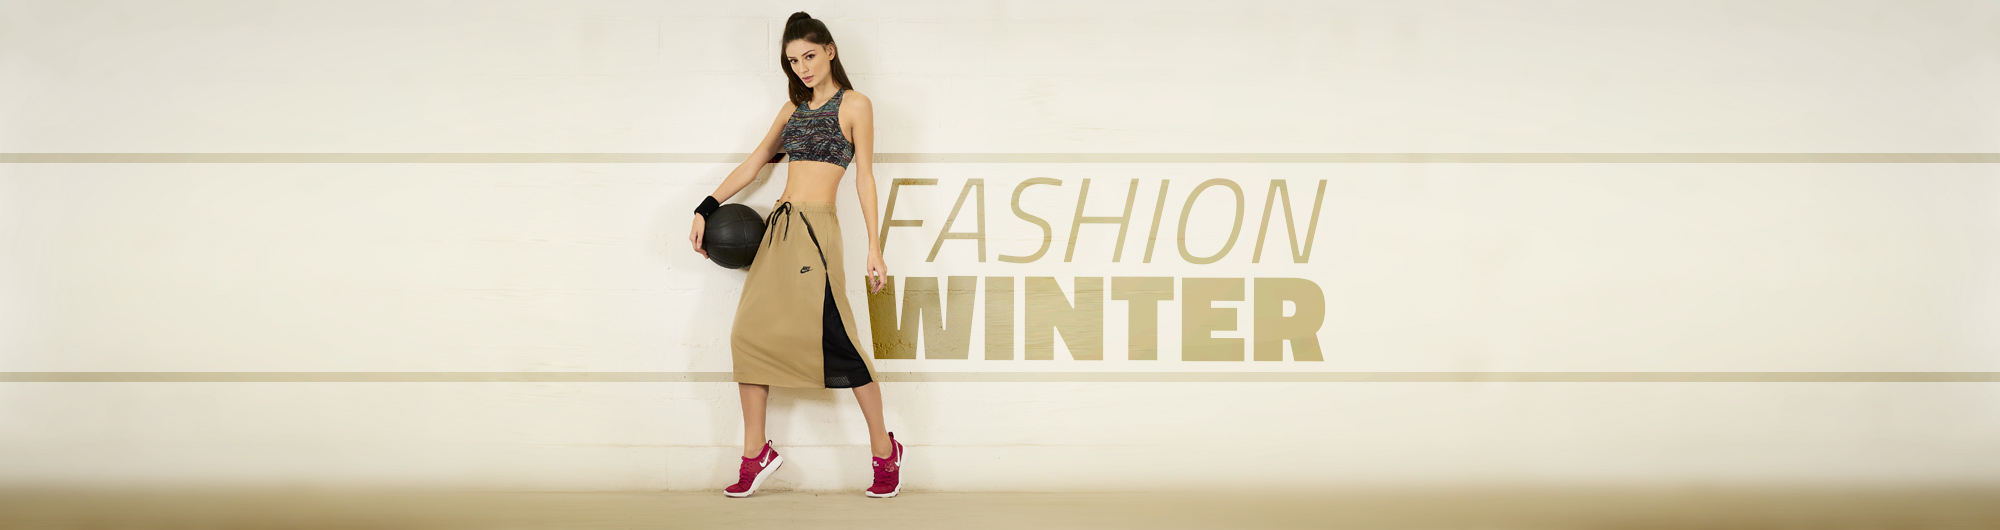 TV 1 - Fashion_Winter